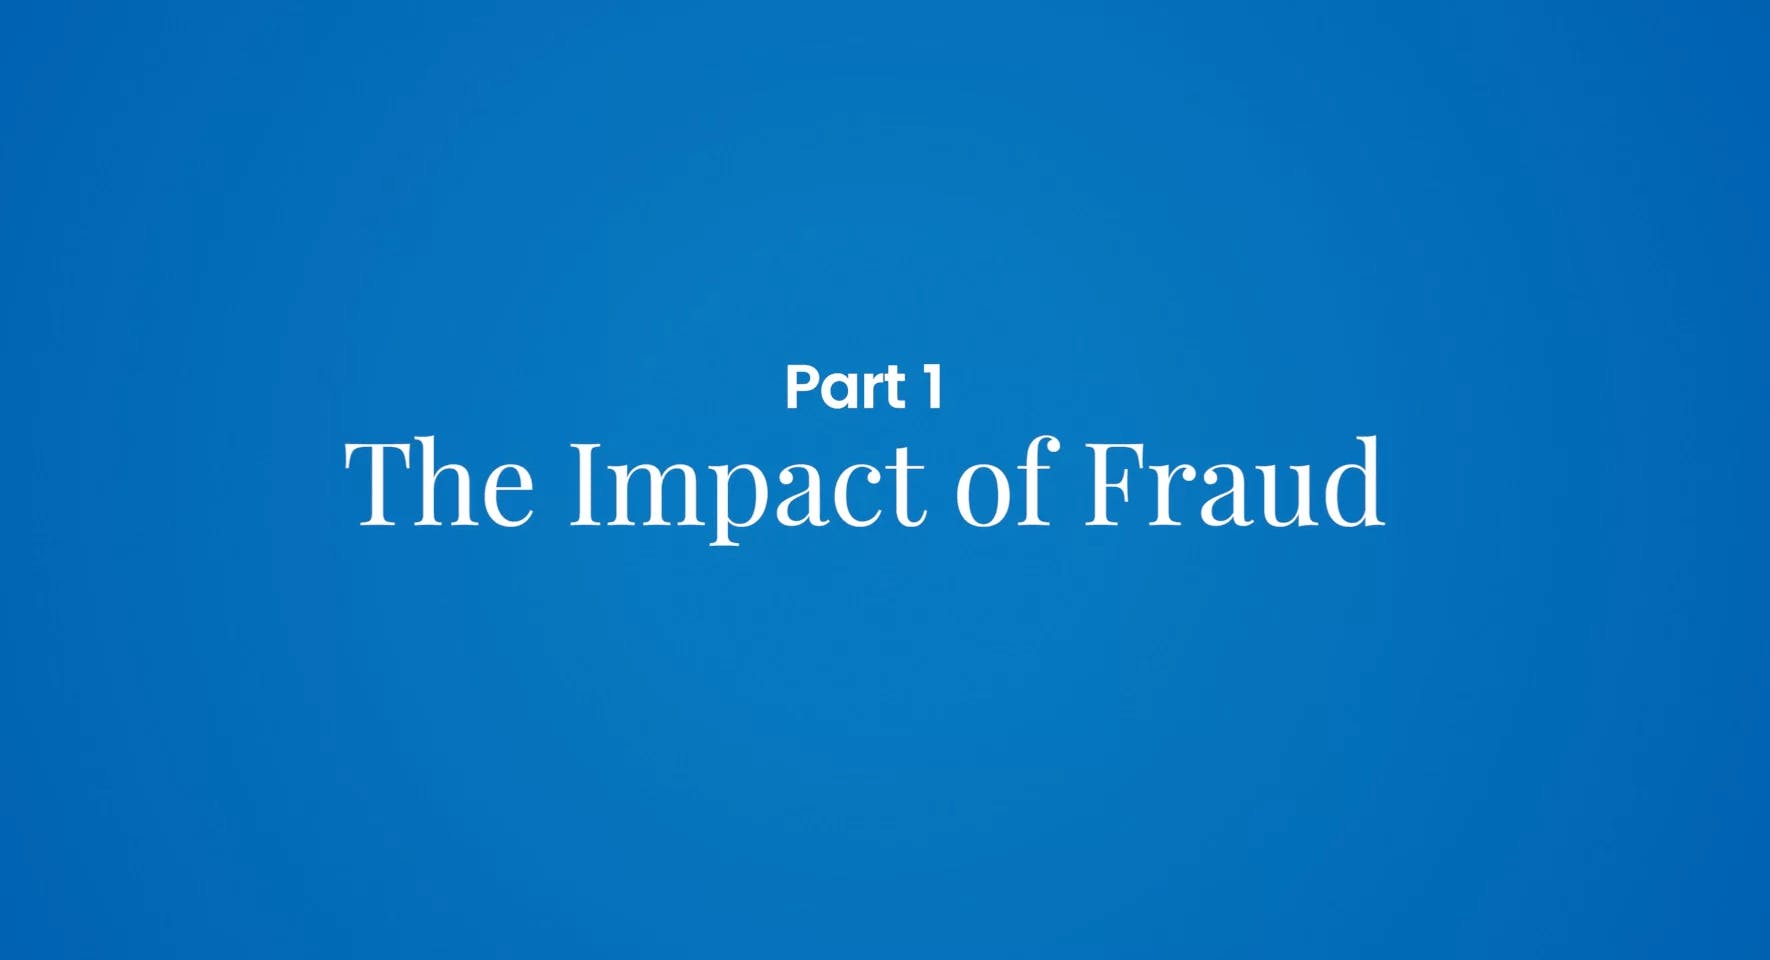 combating fraud Employees in preventing and combating fraud and corruption, and procedures and guidelines for handling incidents of corruption in bank operations are outlined section, 9.